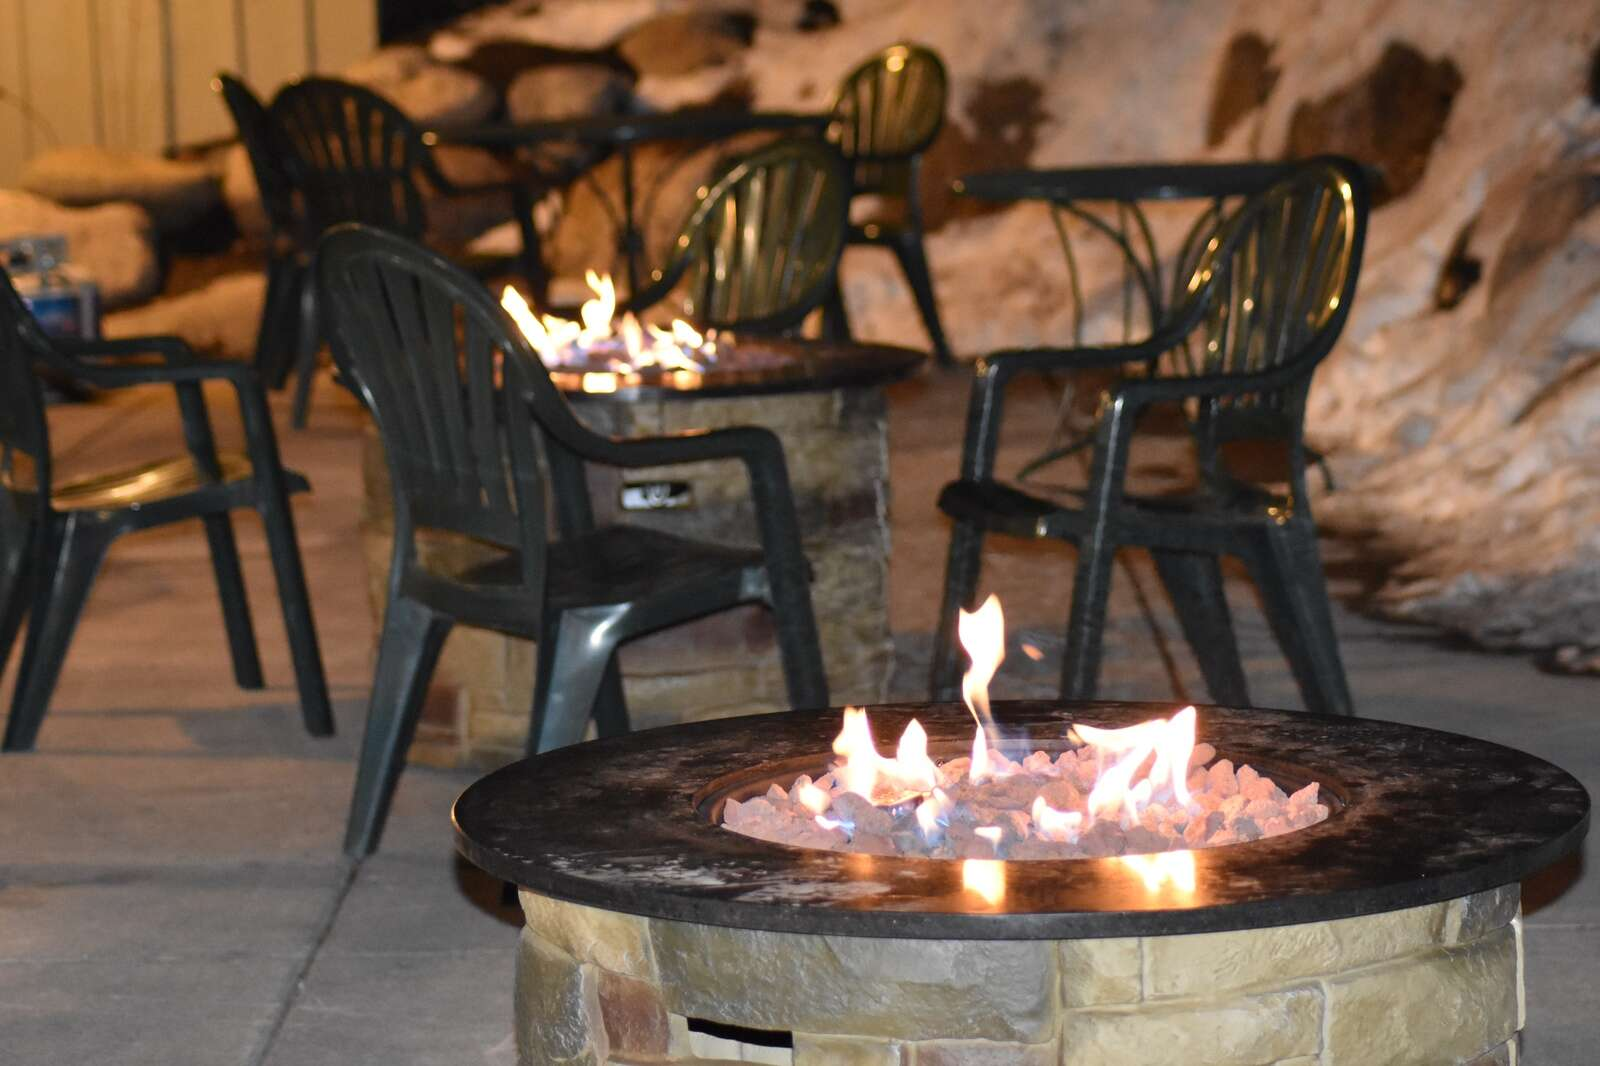 Dillon Dam Brewery has set up fire pits on its patio to serve as a waiting area for customers, as pictured Wednesday, Nov. 18. | Photo by Taylor Sienkiewicz / tsienkiewicz@summitdaily.com